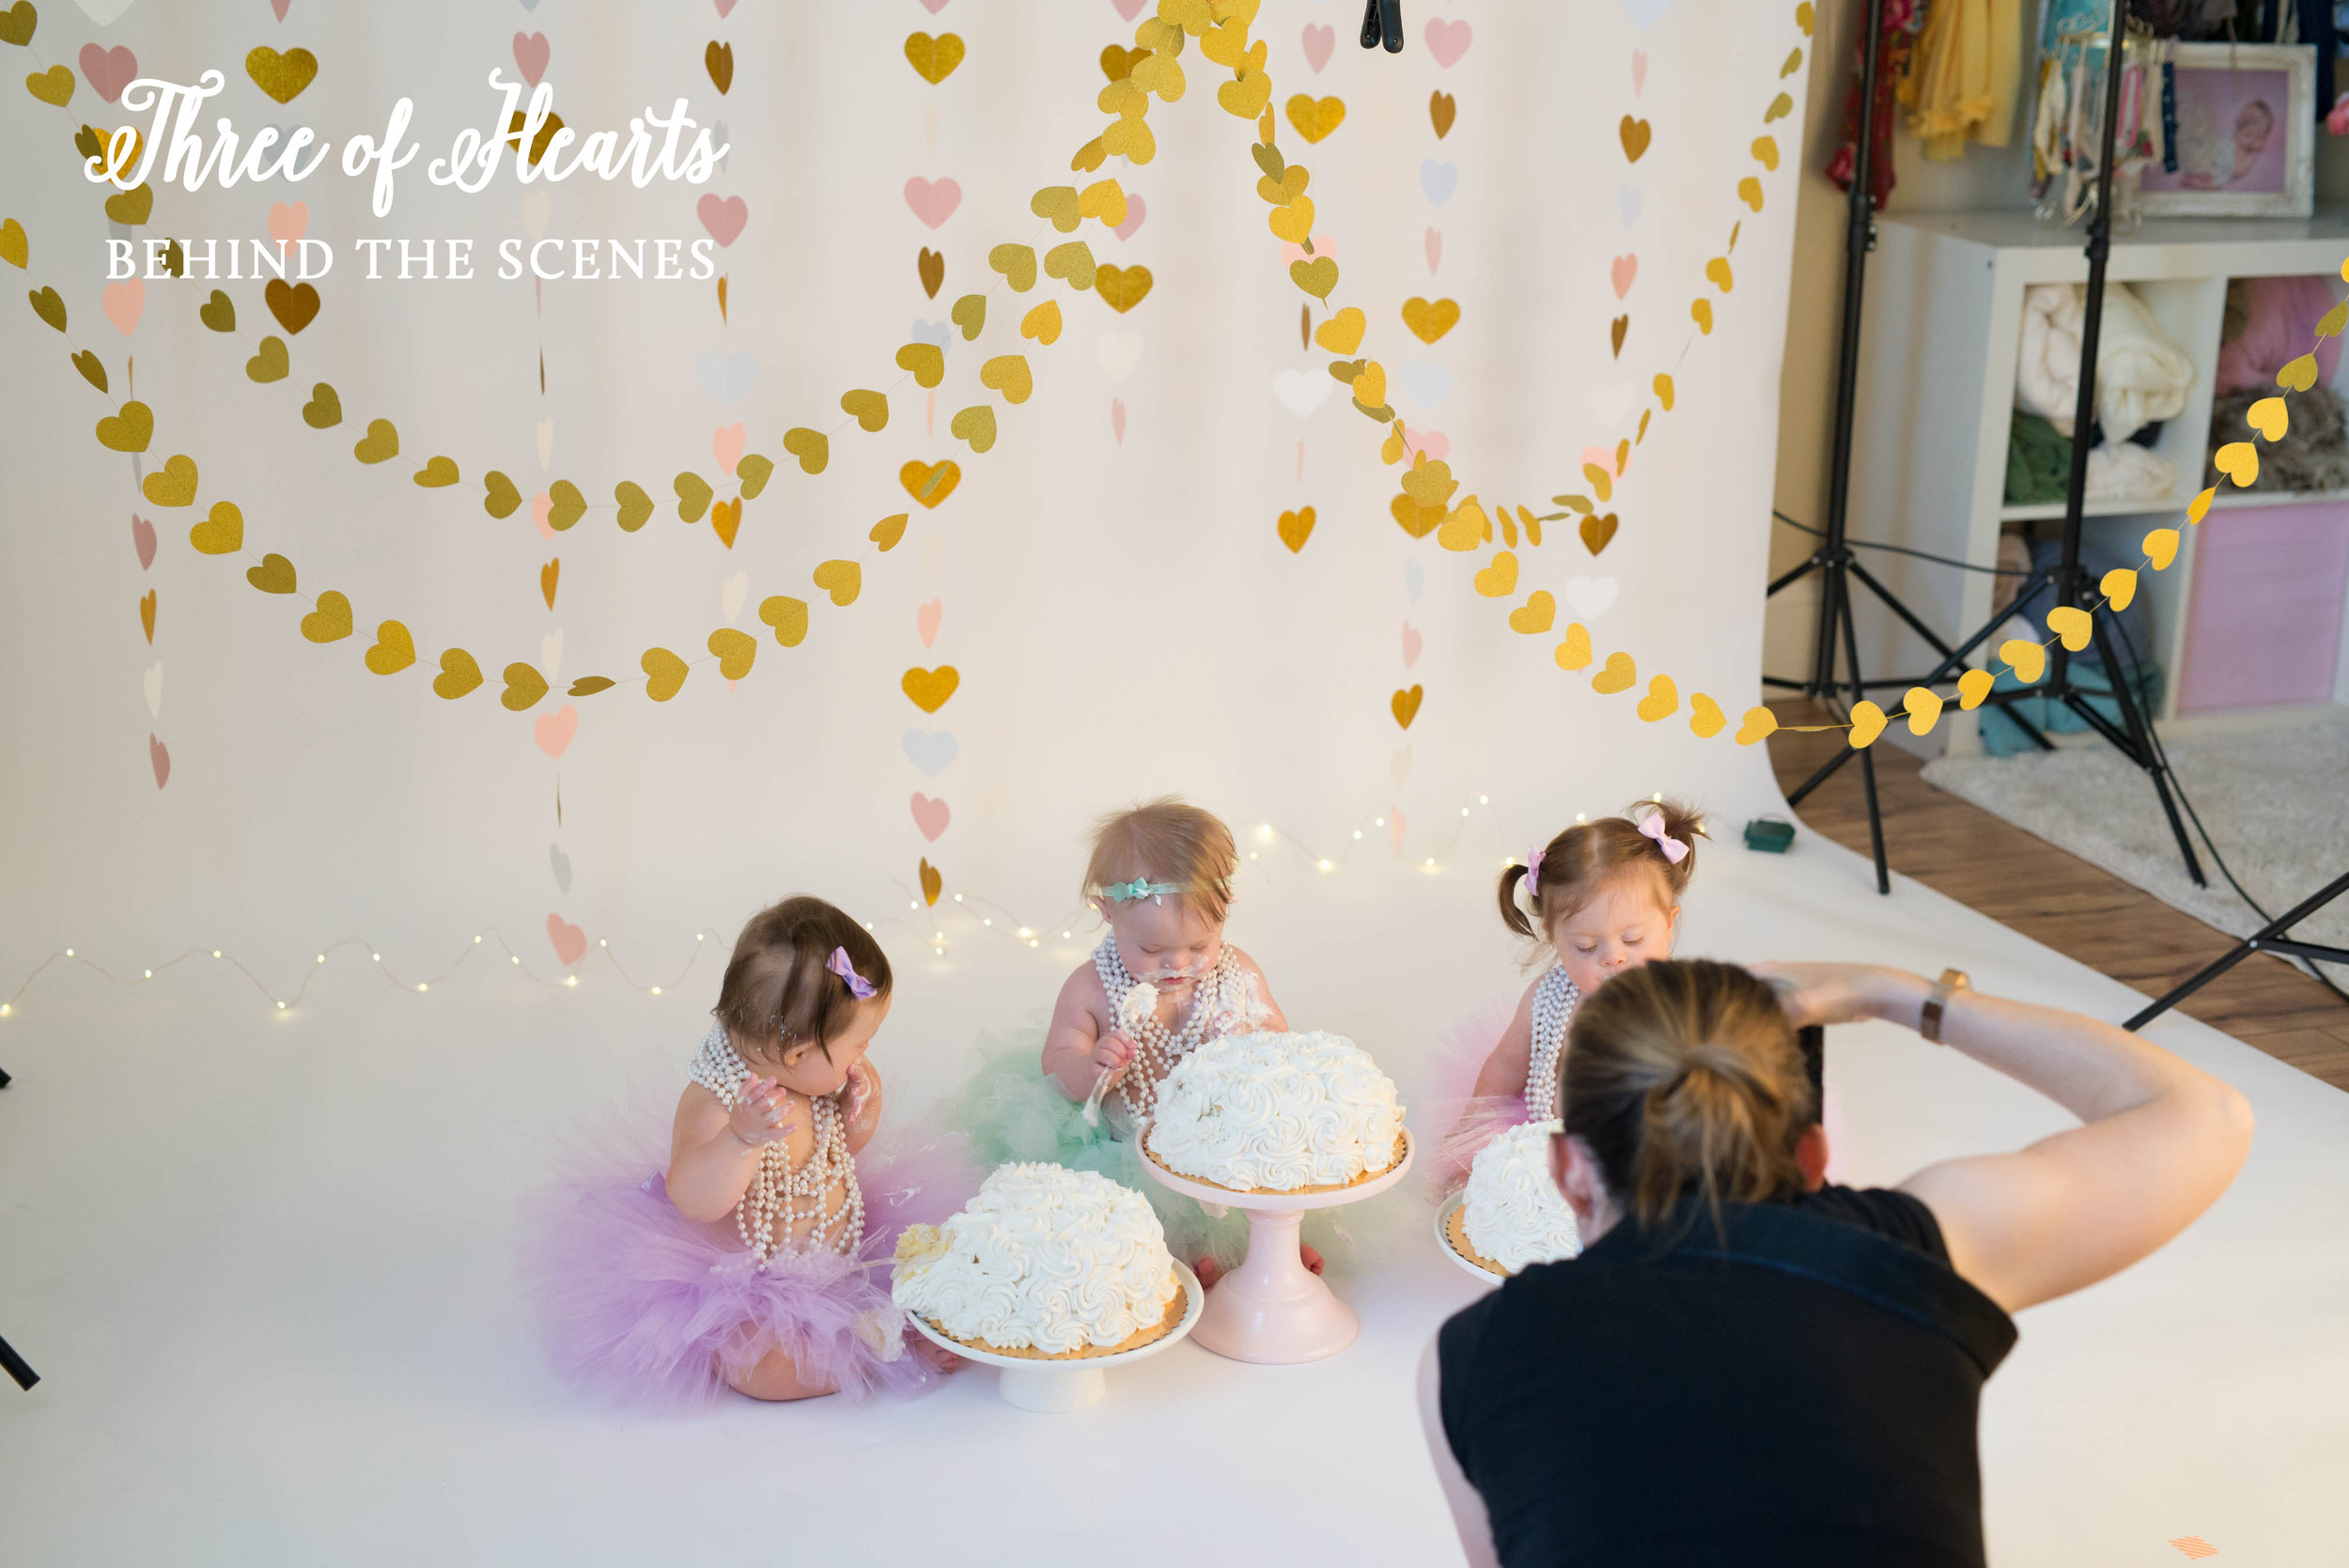 three of hearts cake smash with nicole starr photography, for down syndrome awareness and congenital heart defect awareness